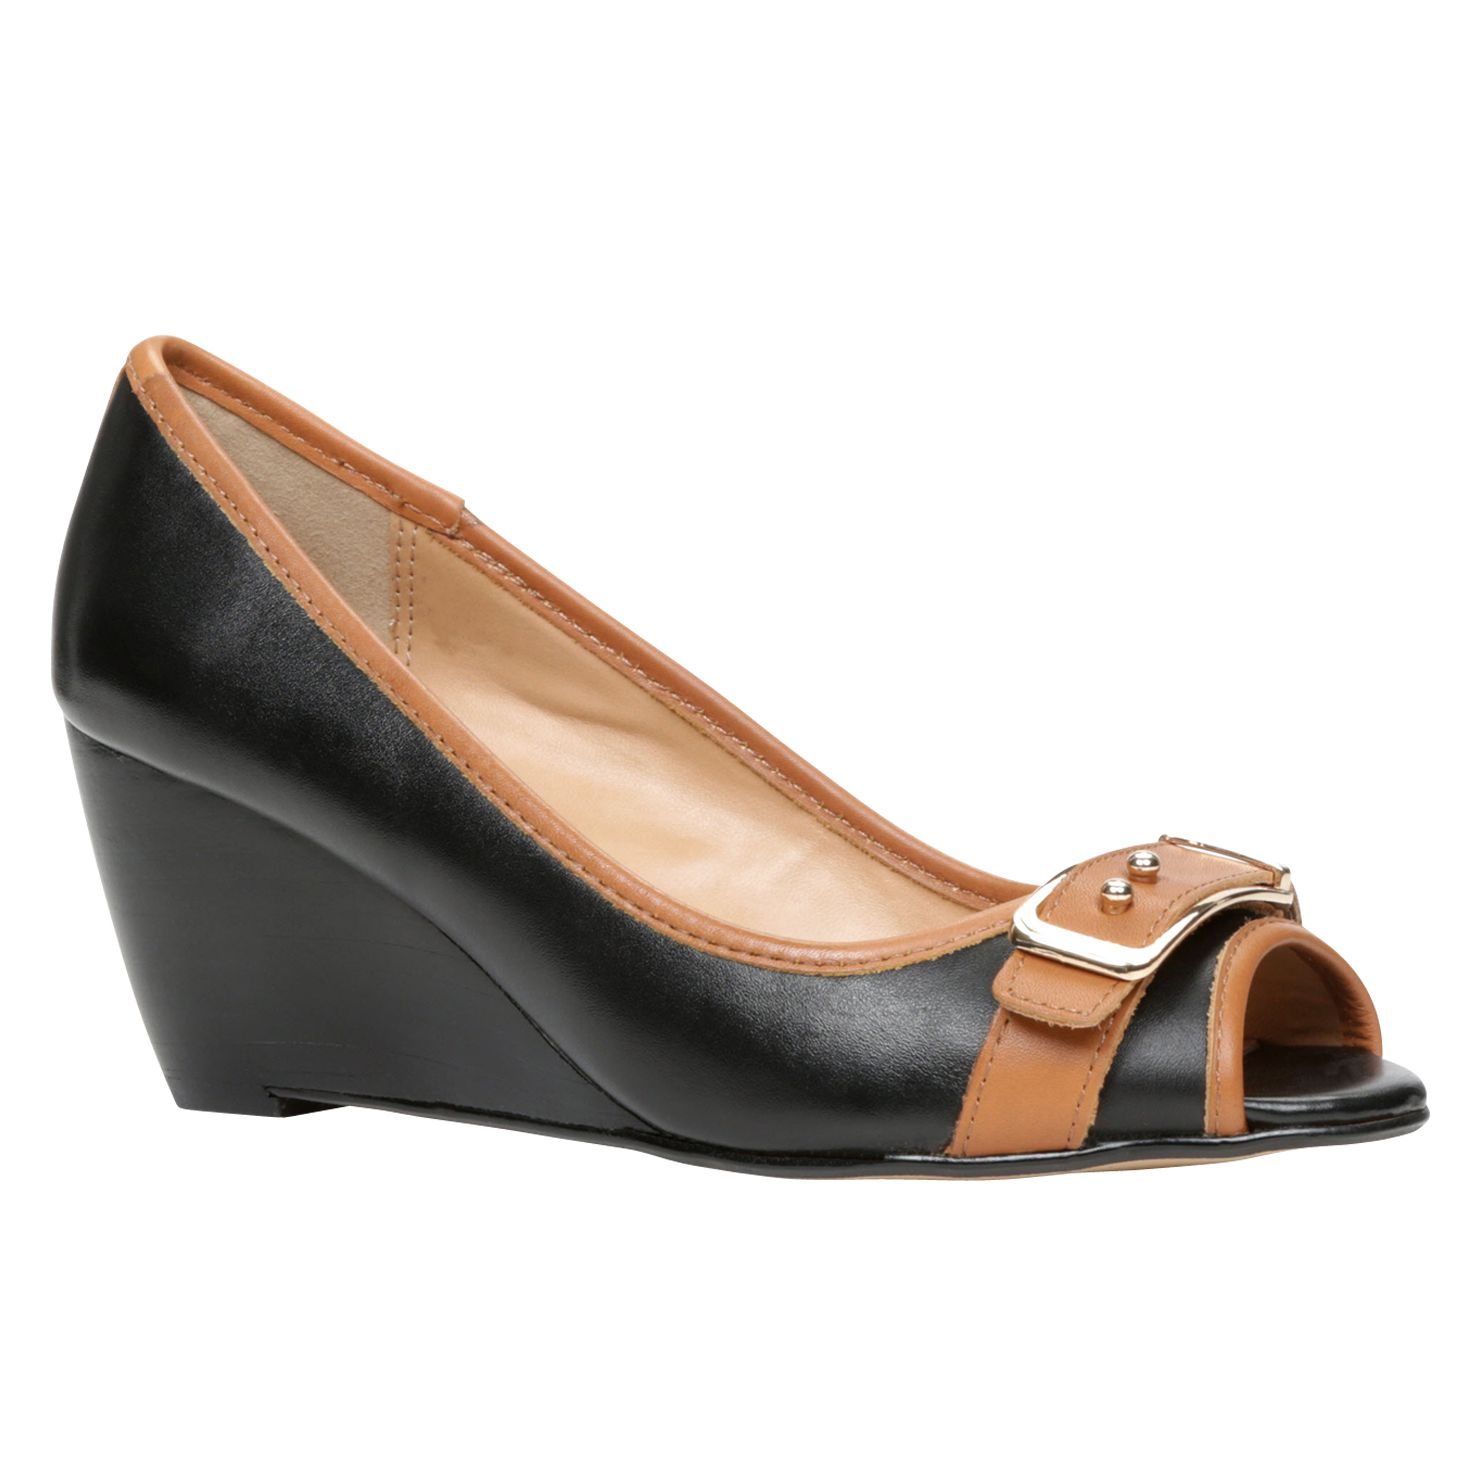 Rusco peep toe wedge shoes